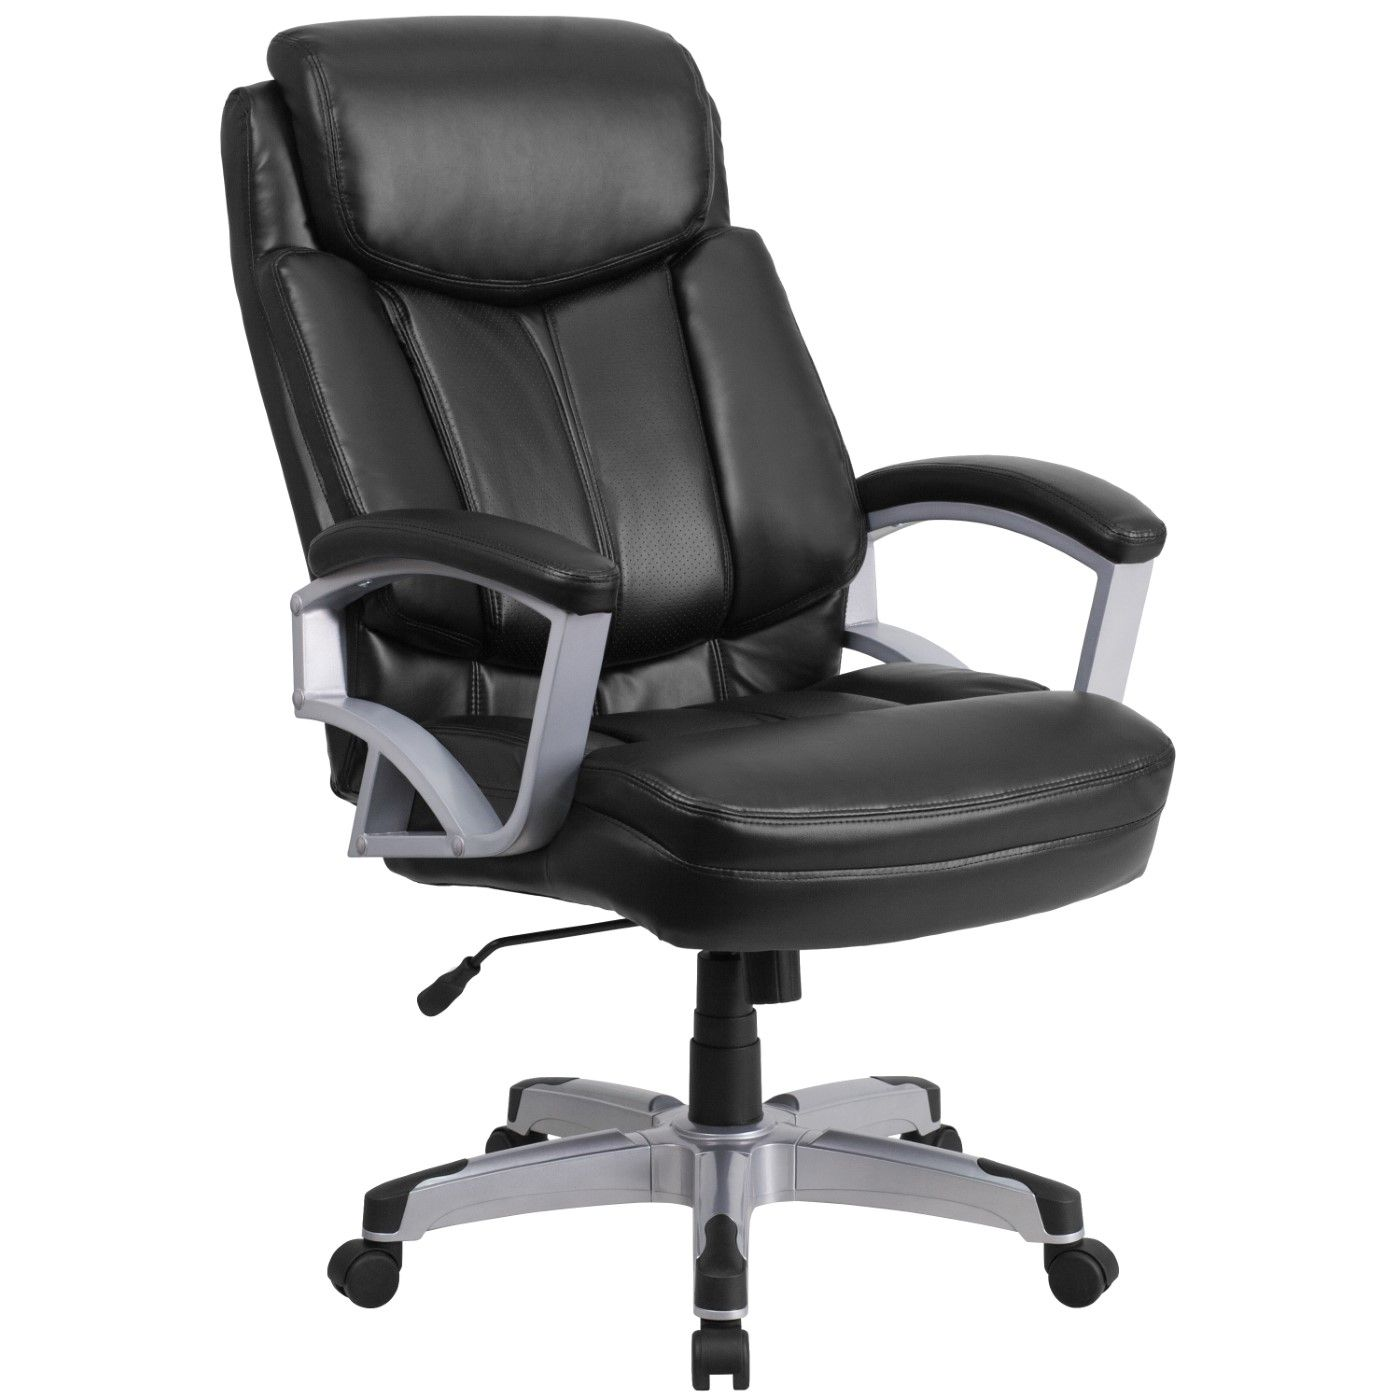 TOUGH ENOUGH Series Big & Tall 500 lb. Rated Black LeatherSoft Executive Swivel Ergonomic Office Chair with Arms